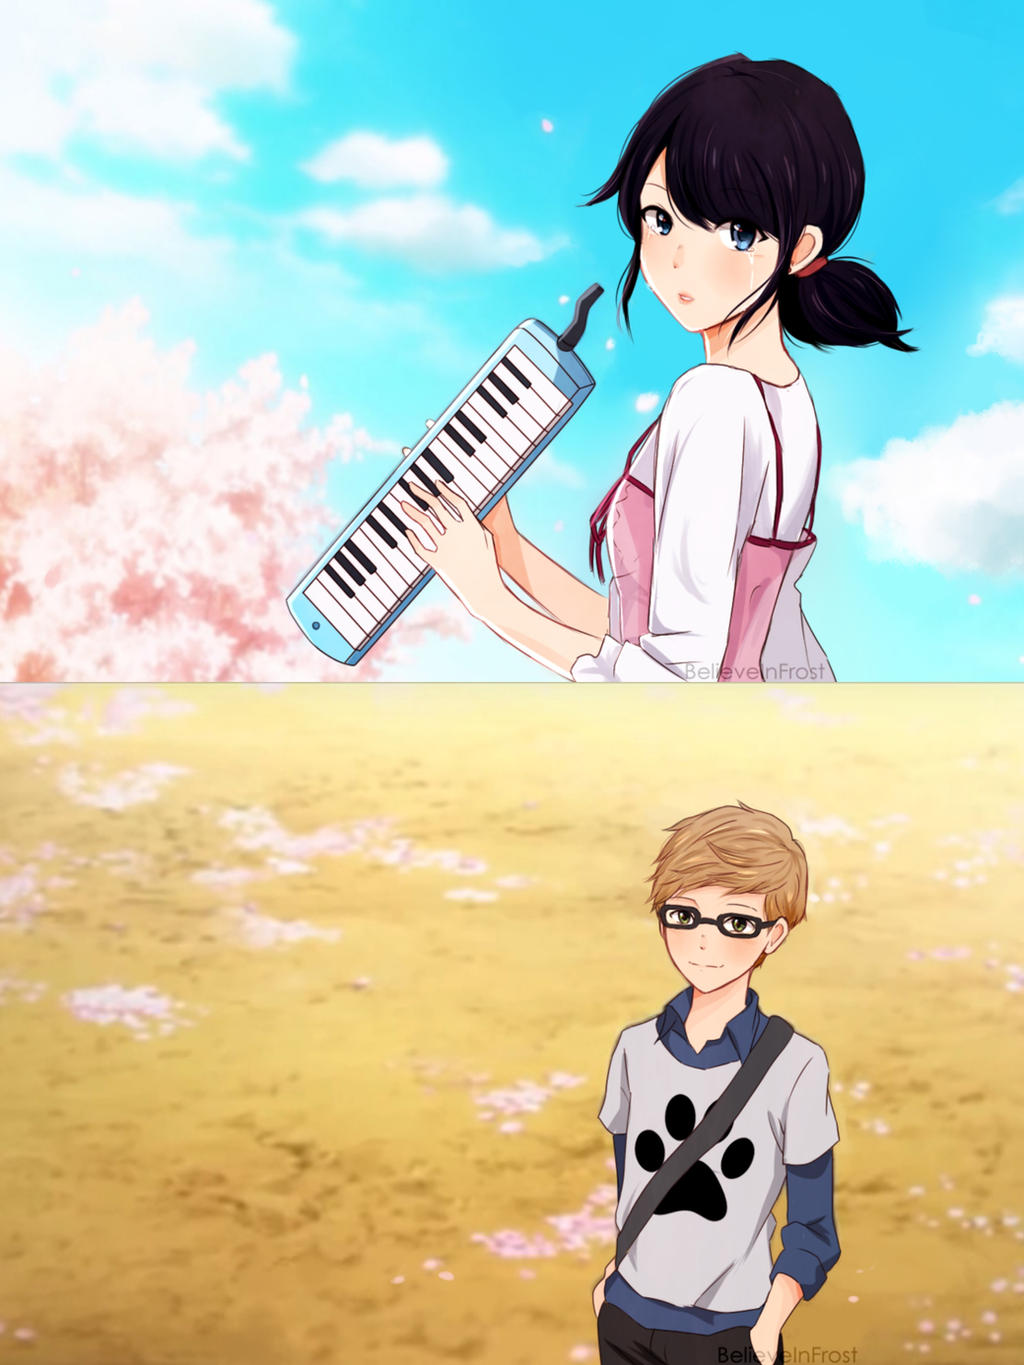 Miraculous Ladybug Your Lie In April AU By BelieveInFrost